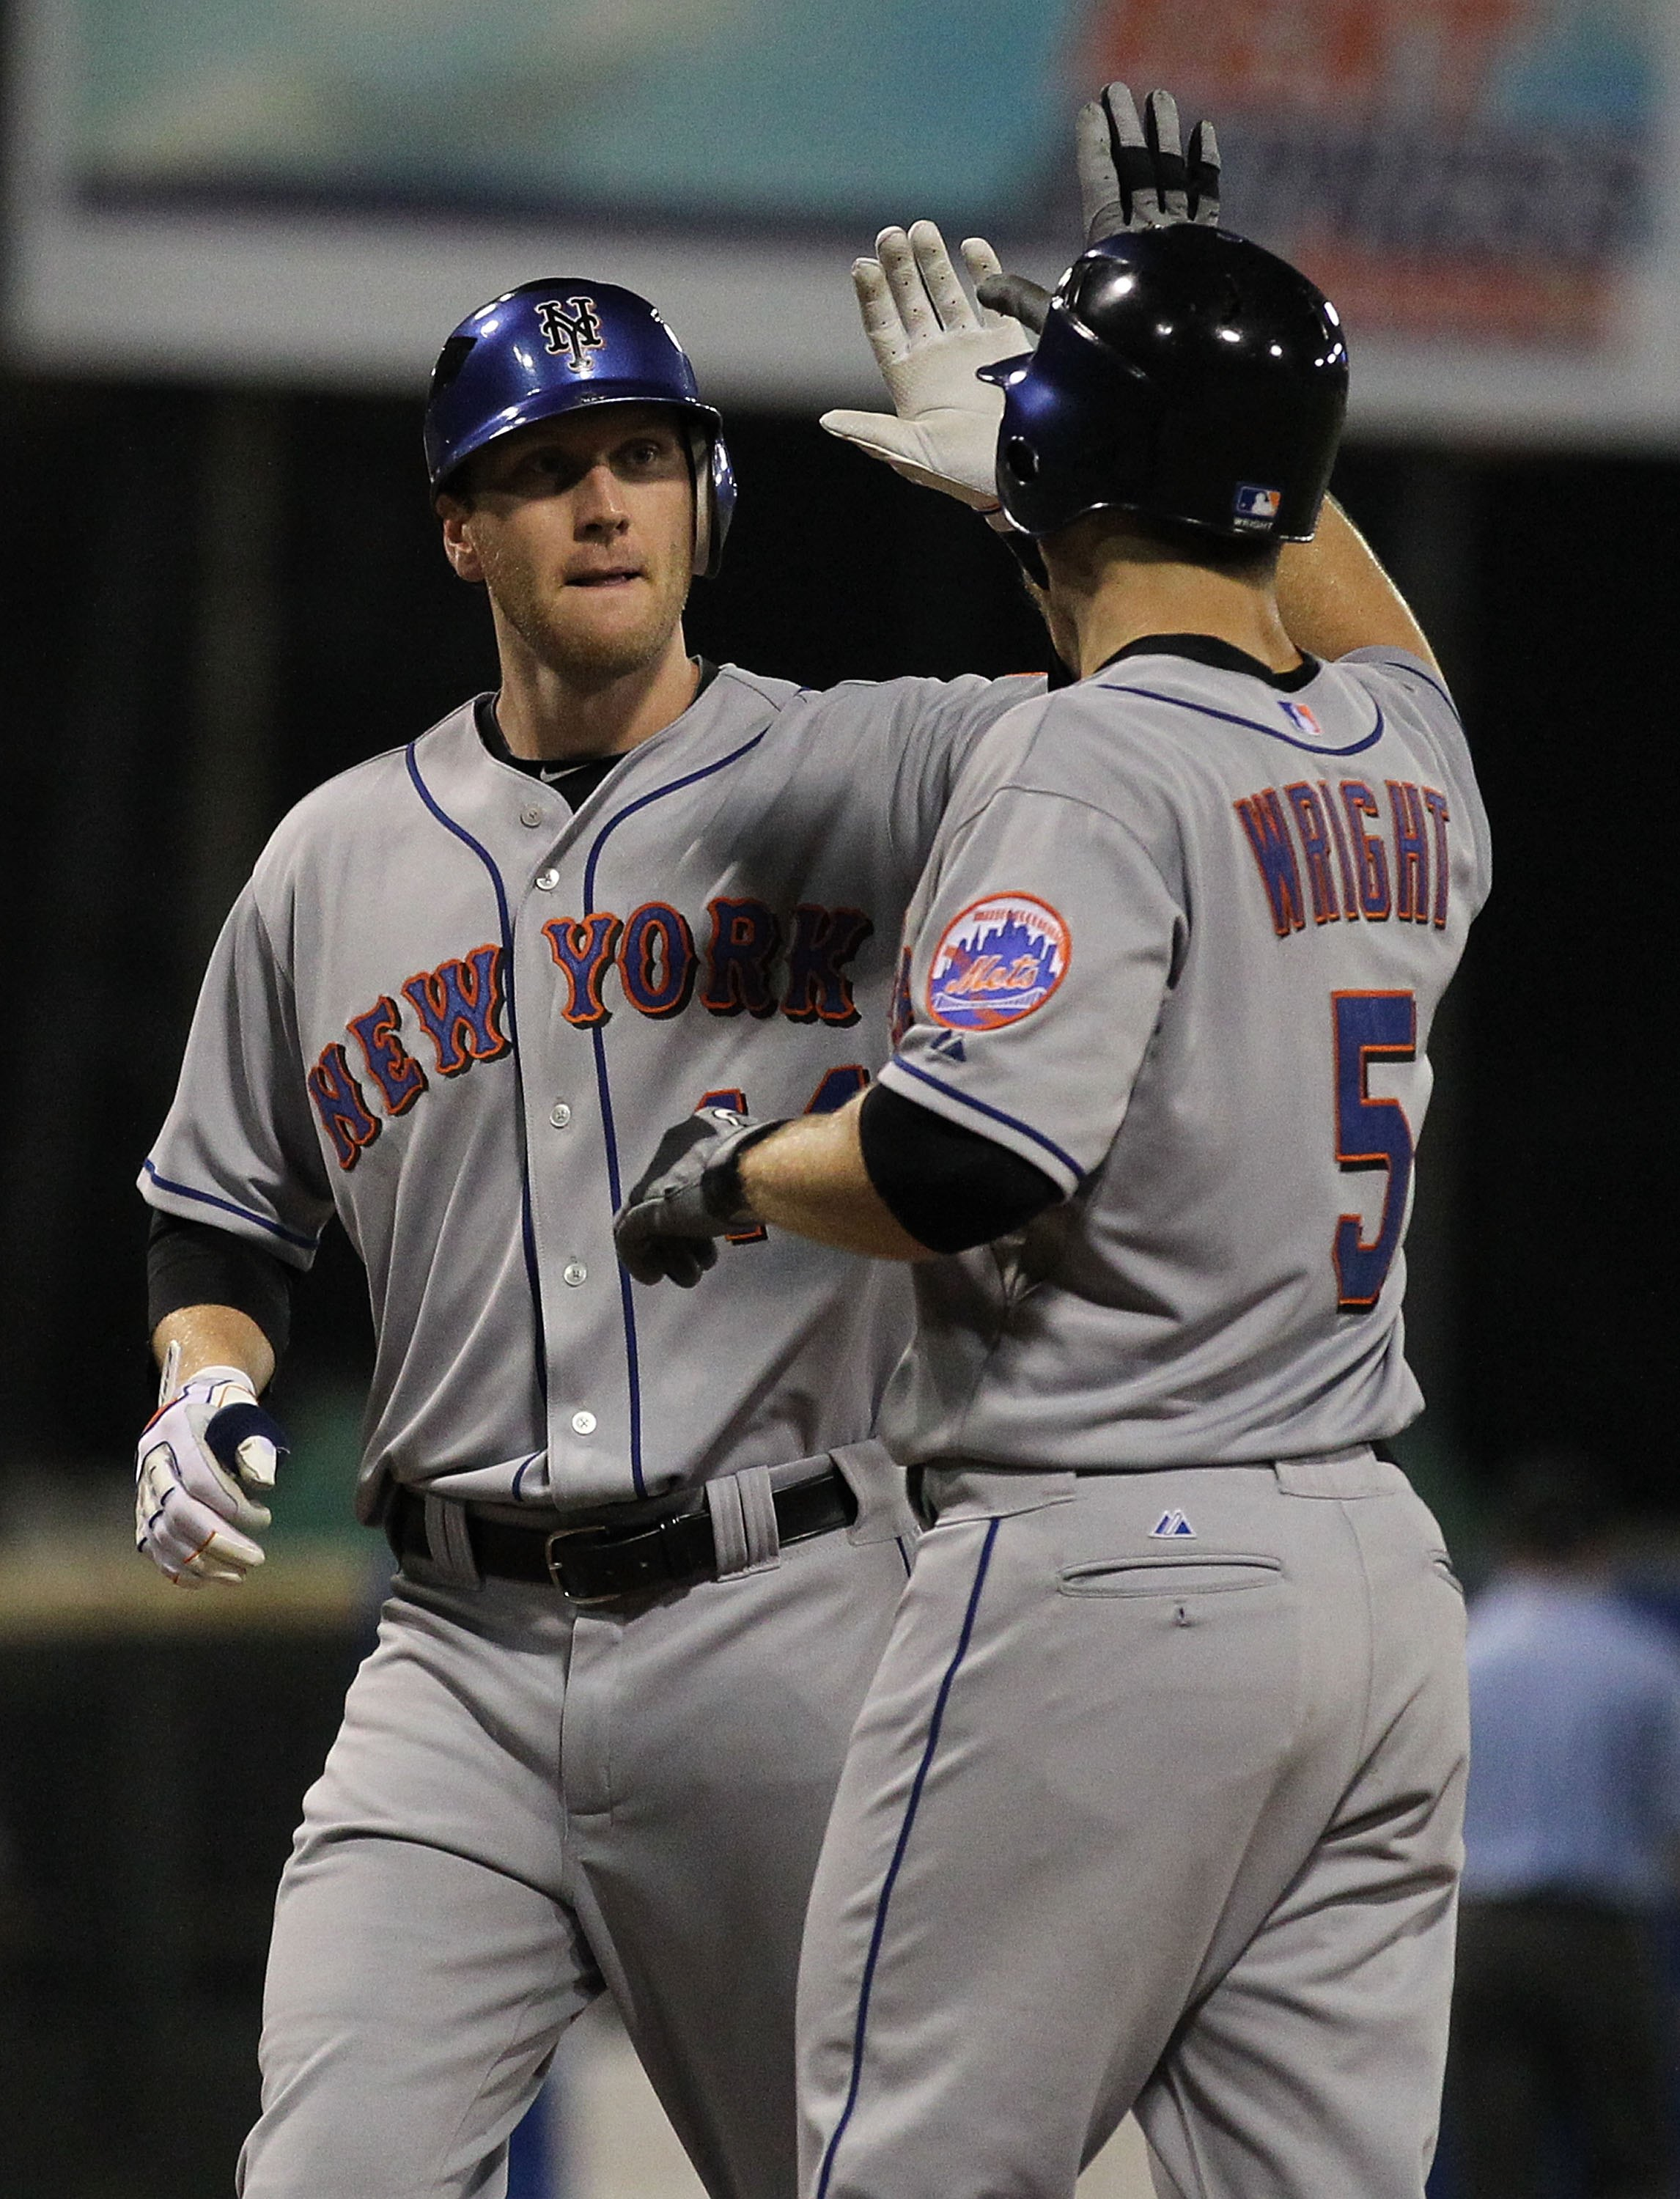 SAN JUAN, PUERTO RICO - JUNE 28:  Jason Bay #44 of the New York Mets is greeted by David Wright #5 after hitting a home run against the Florida Marlins  during their game at Hiram Bithorn Stadium on June 28, 2010 in San Juan, Puerto Rico.  (Photo by Al Be